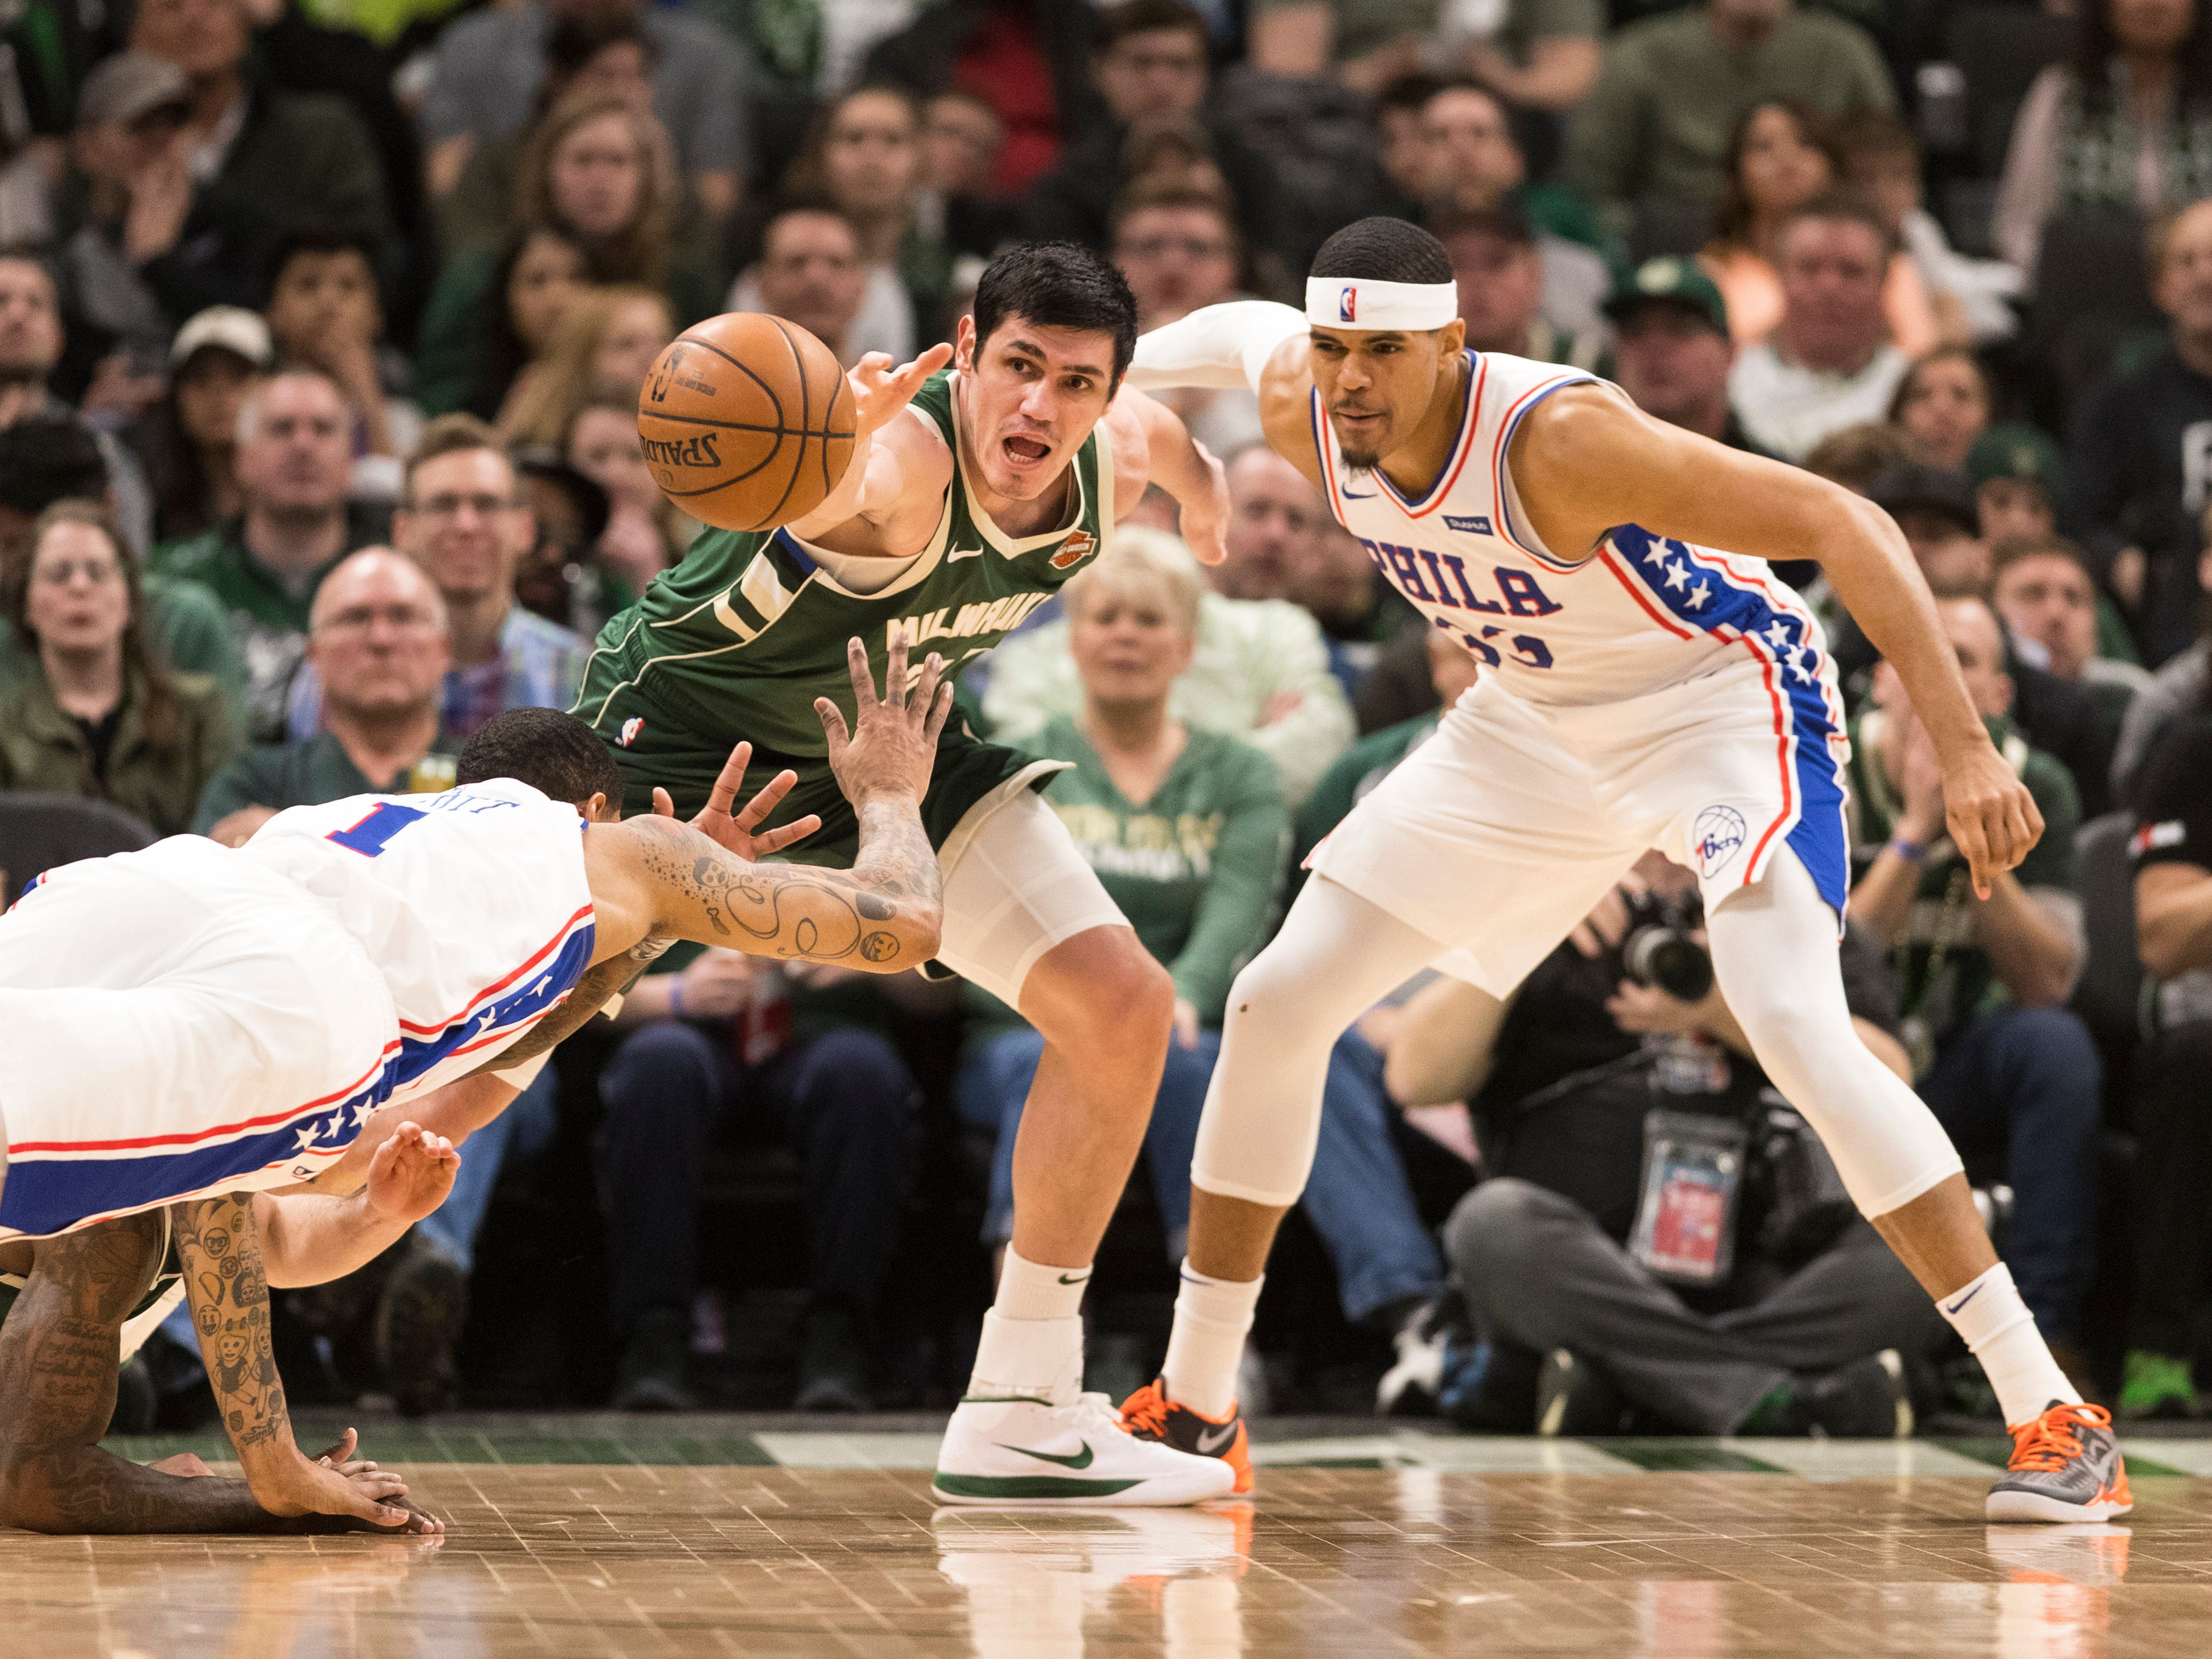 Players from both teams hit the deck as Bucks forward Ersan Ilyasova moves in to grab a loose ball Sunday.